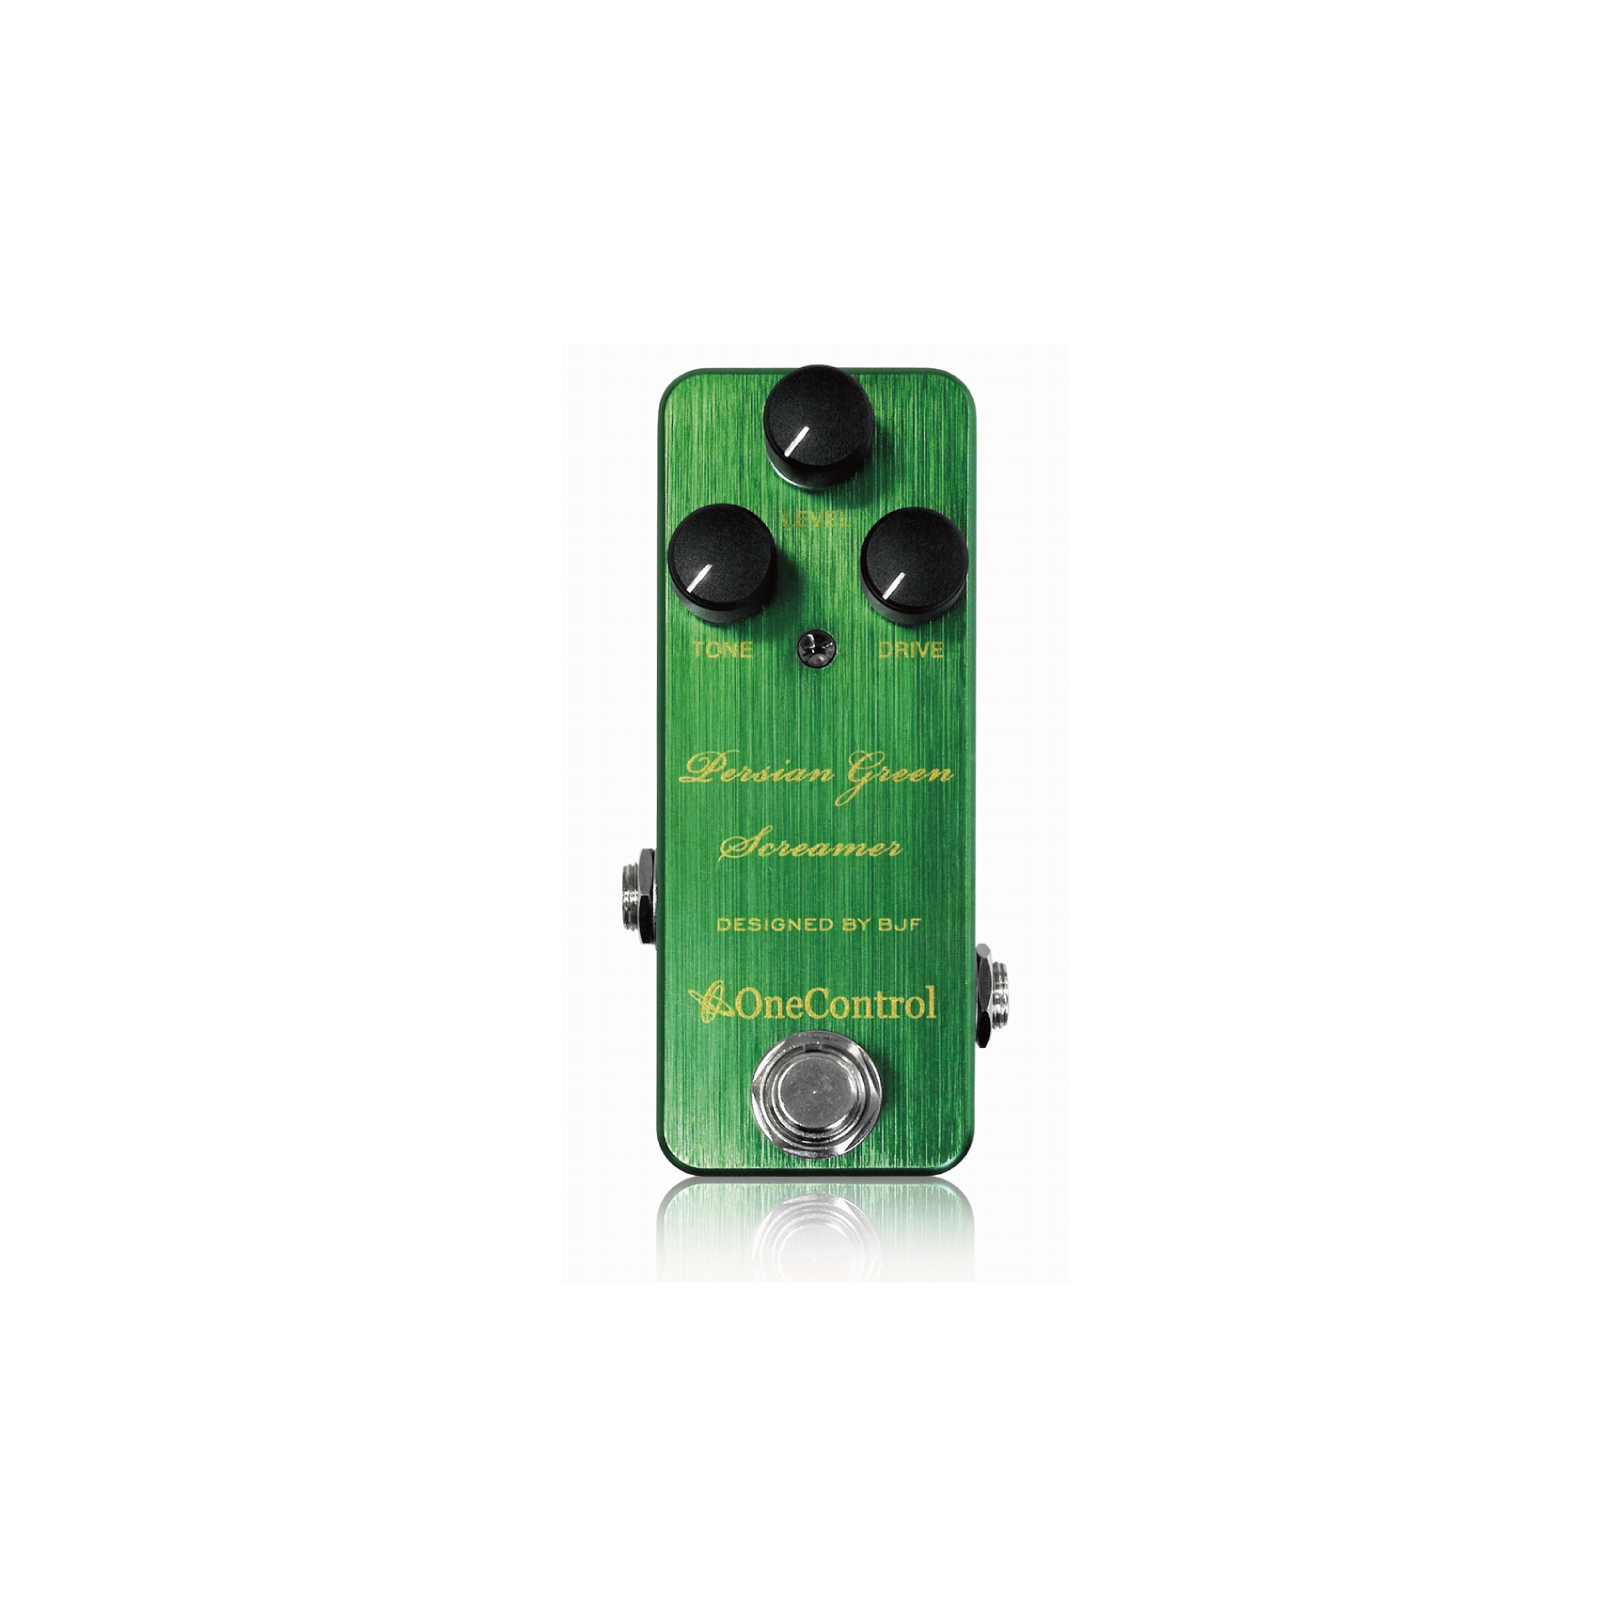 ONE CONTROL Persian Green Screamer BJF Vintage Tubescreamer Overdrive Pedal